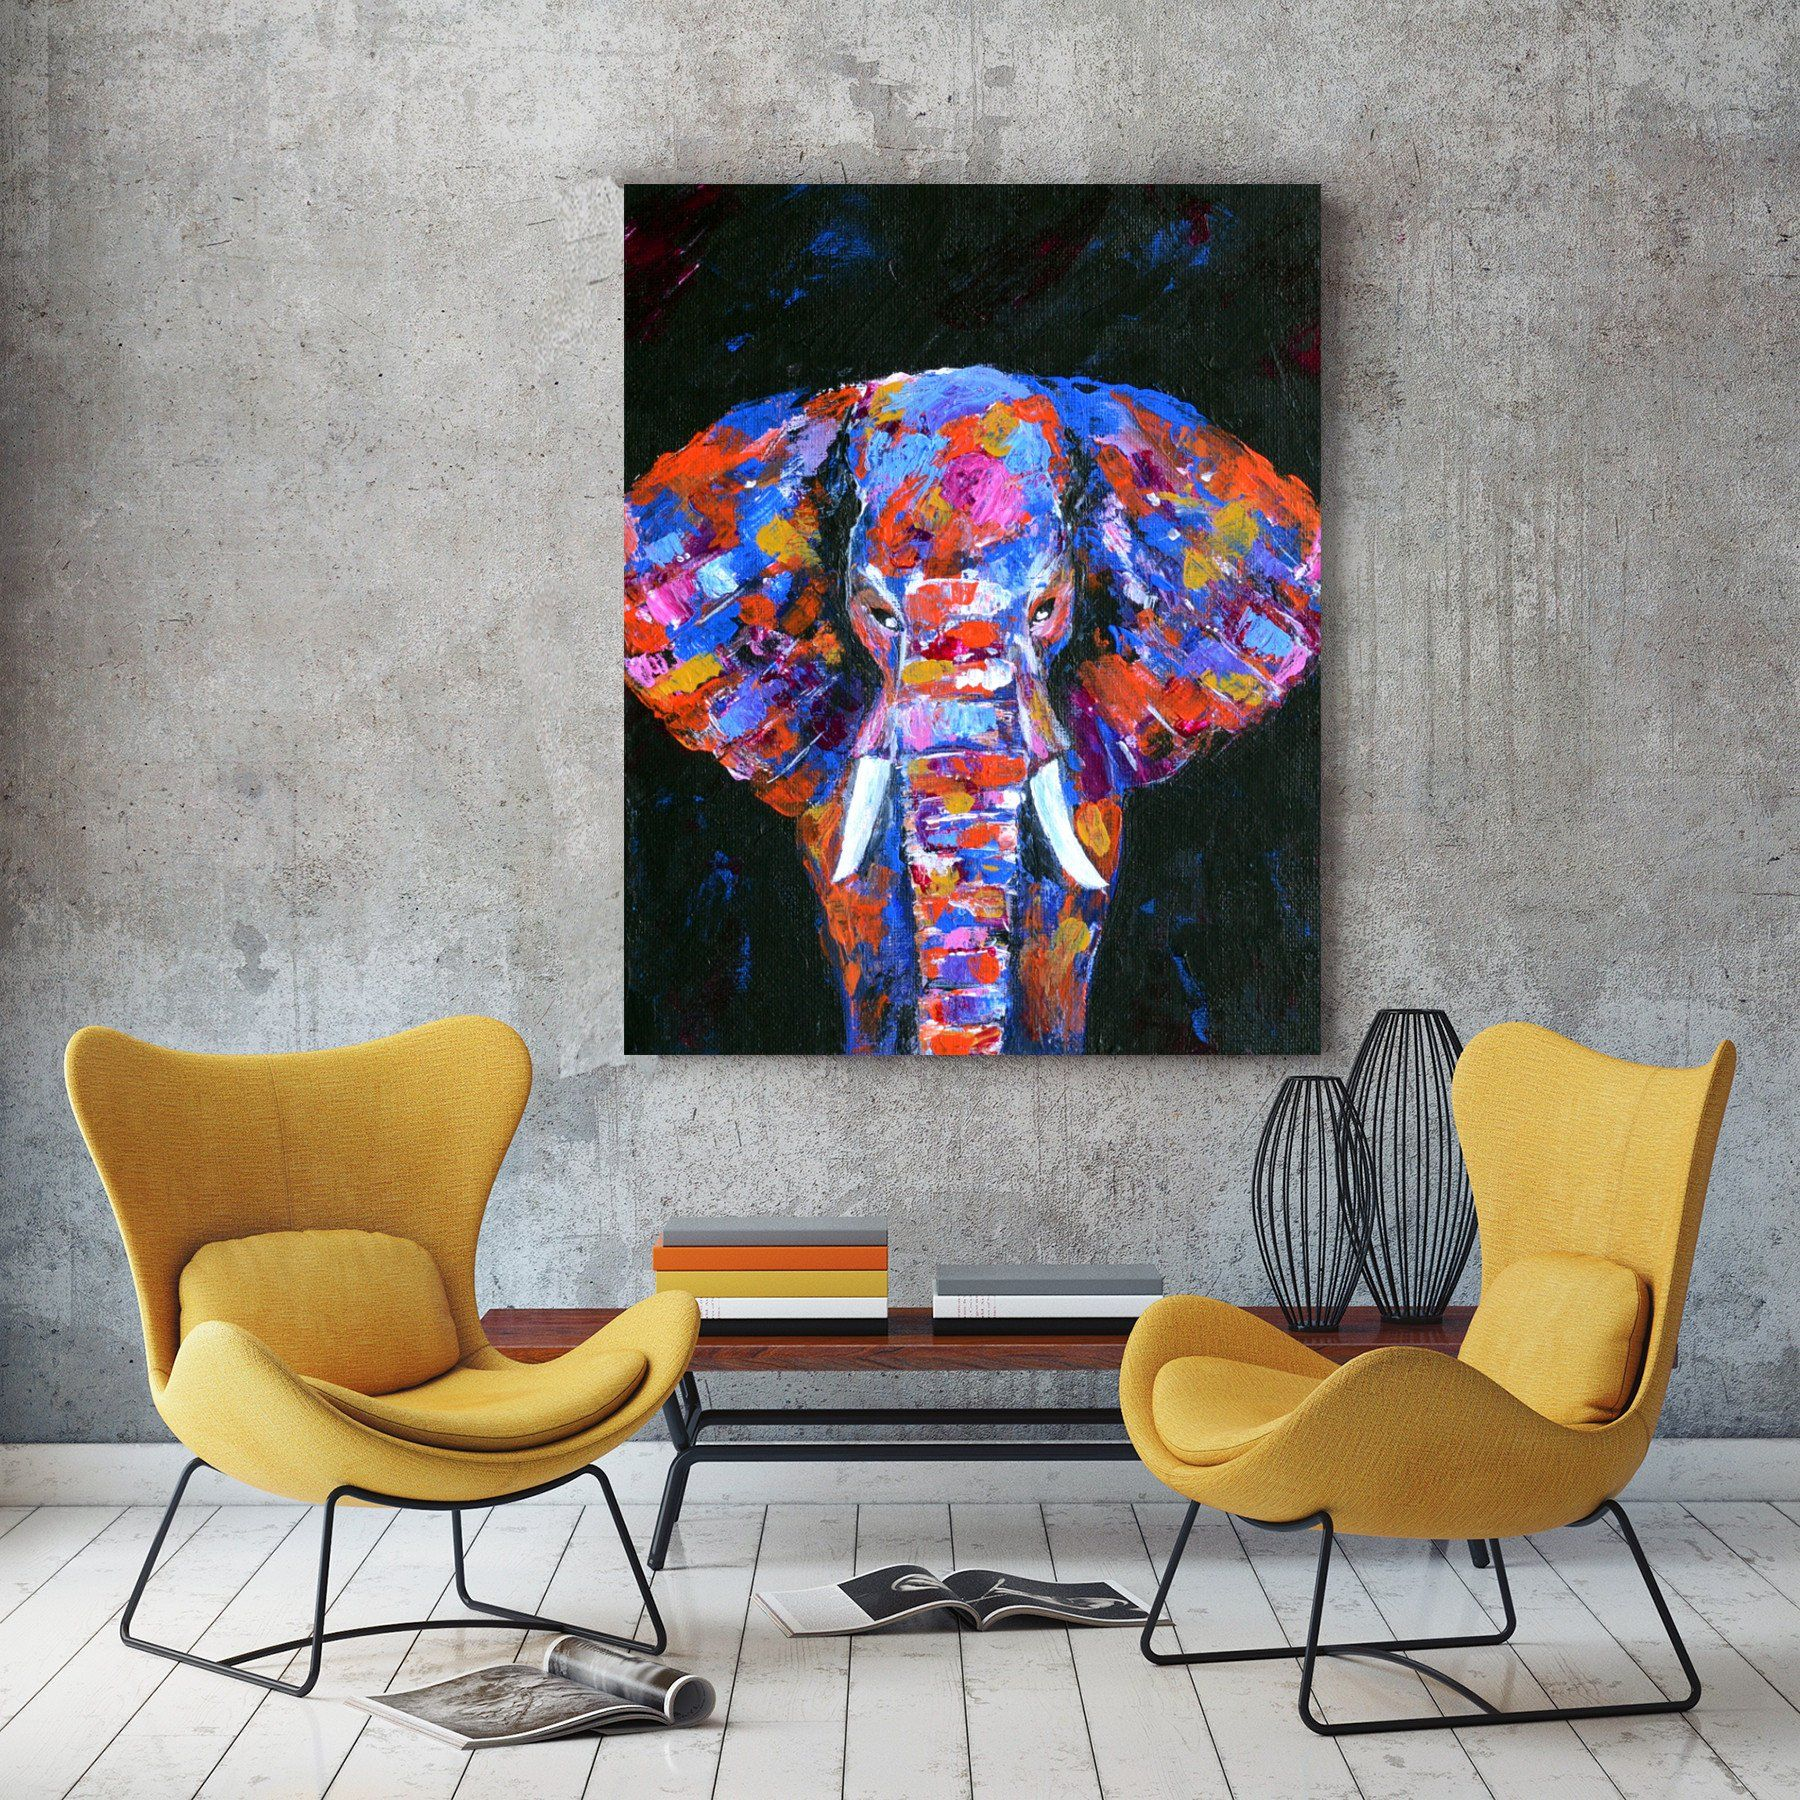 Abstract Elephant Painting, Original Elephant Art, Palette Knife Art, Colorful